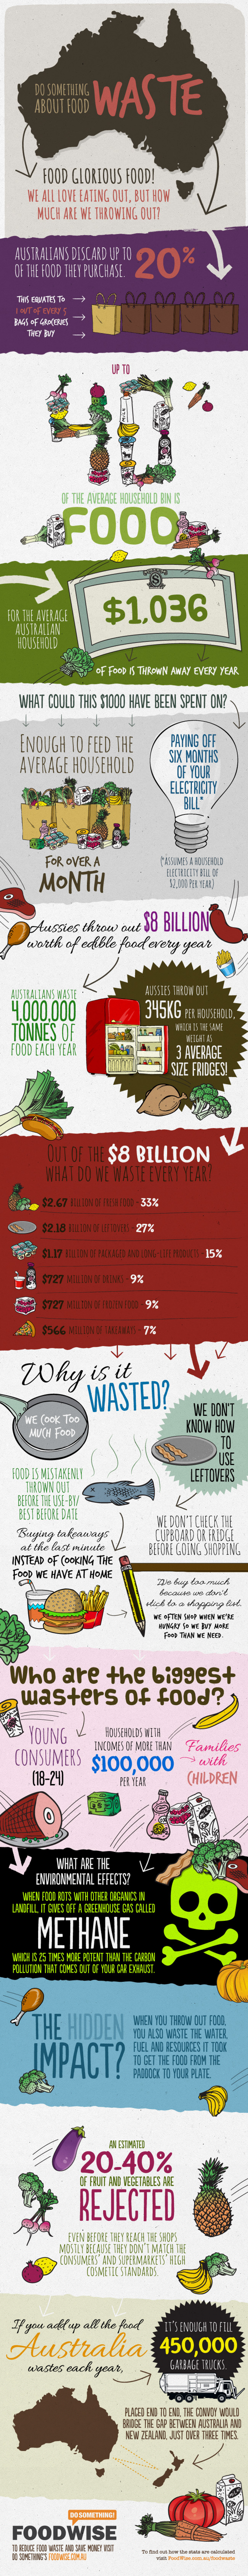 Australians Throw Away $8 Billion of Food Each Year! Infographic